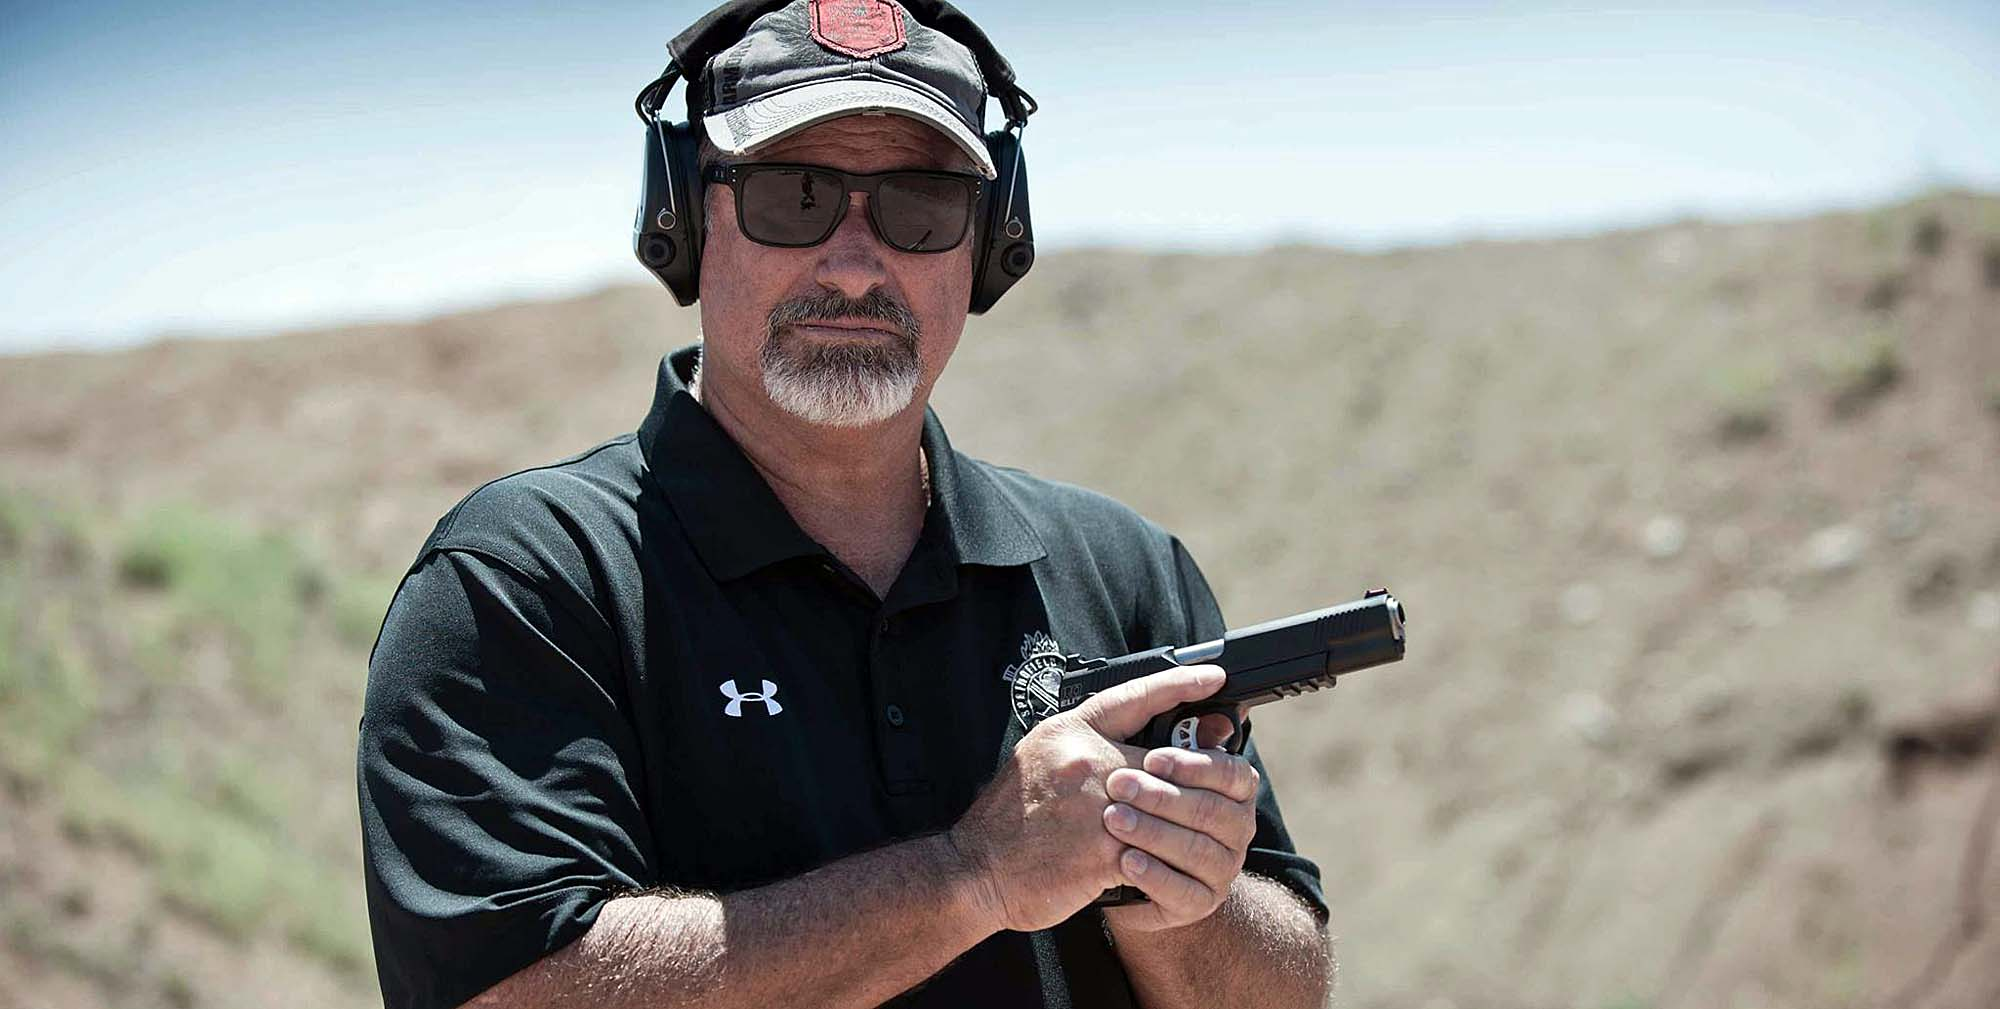 Springfield Armory introduces the Range Officer Elite pistols